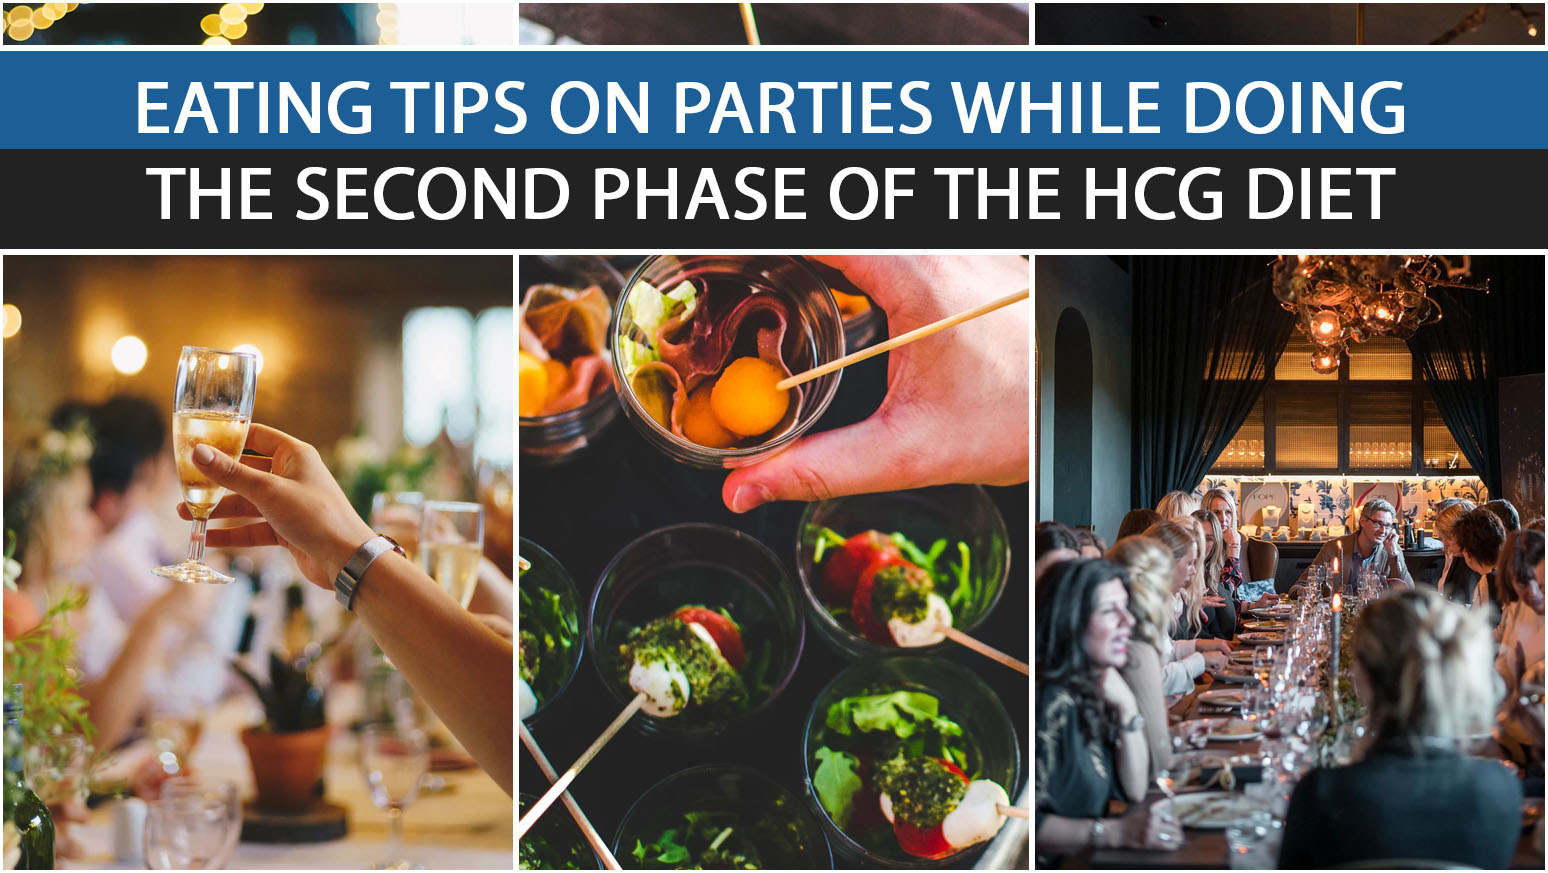 EATING TIPS ON PARTIES WHILE DOING THE SECOND PHASE OF THE HCG DIET